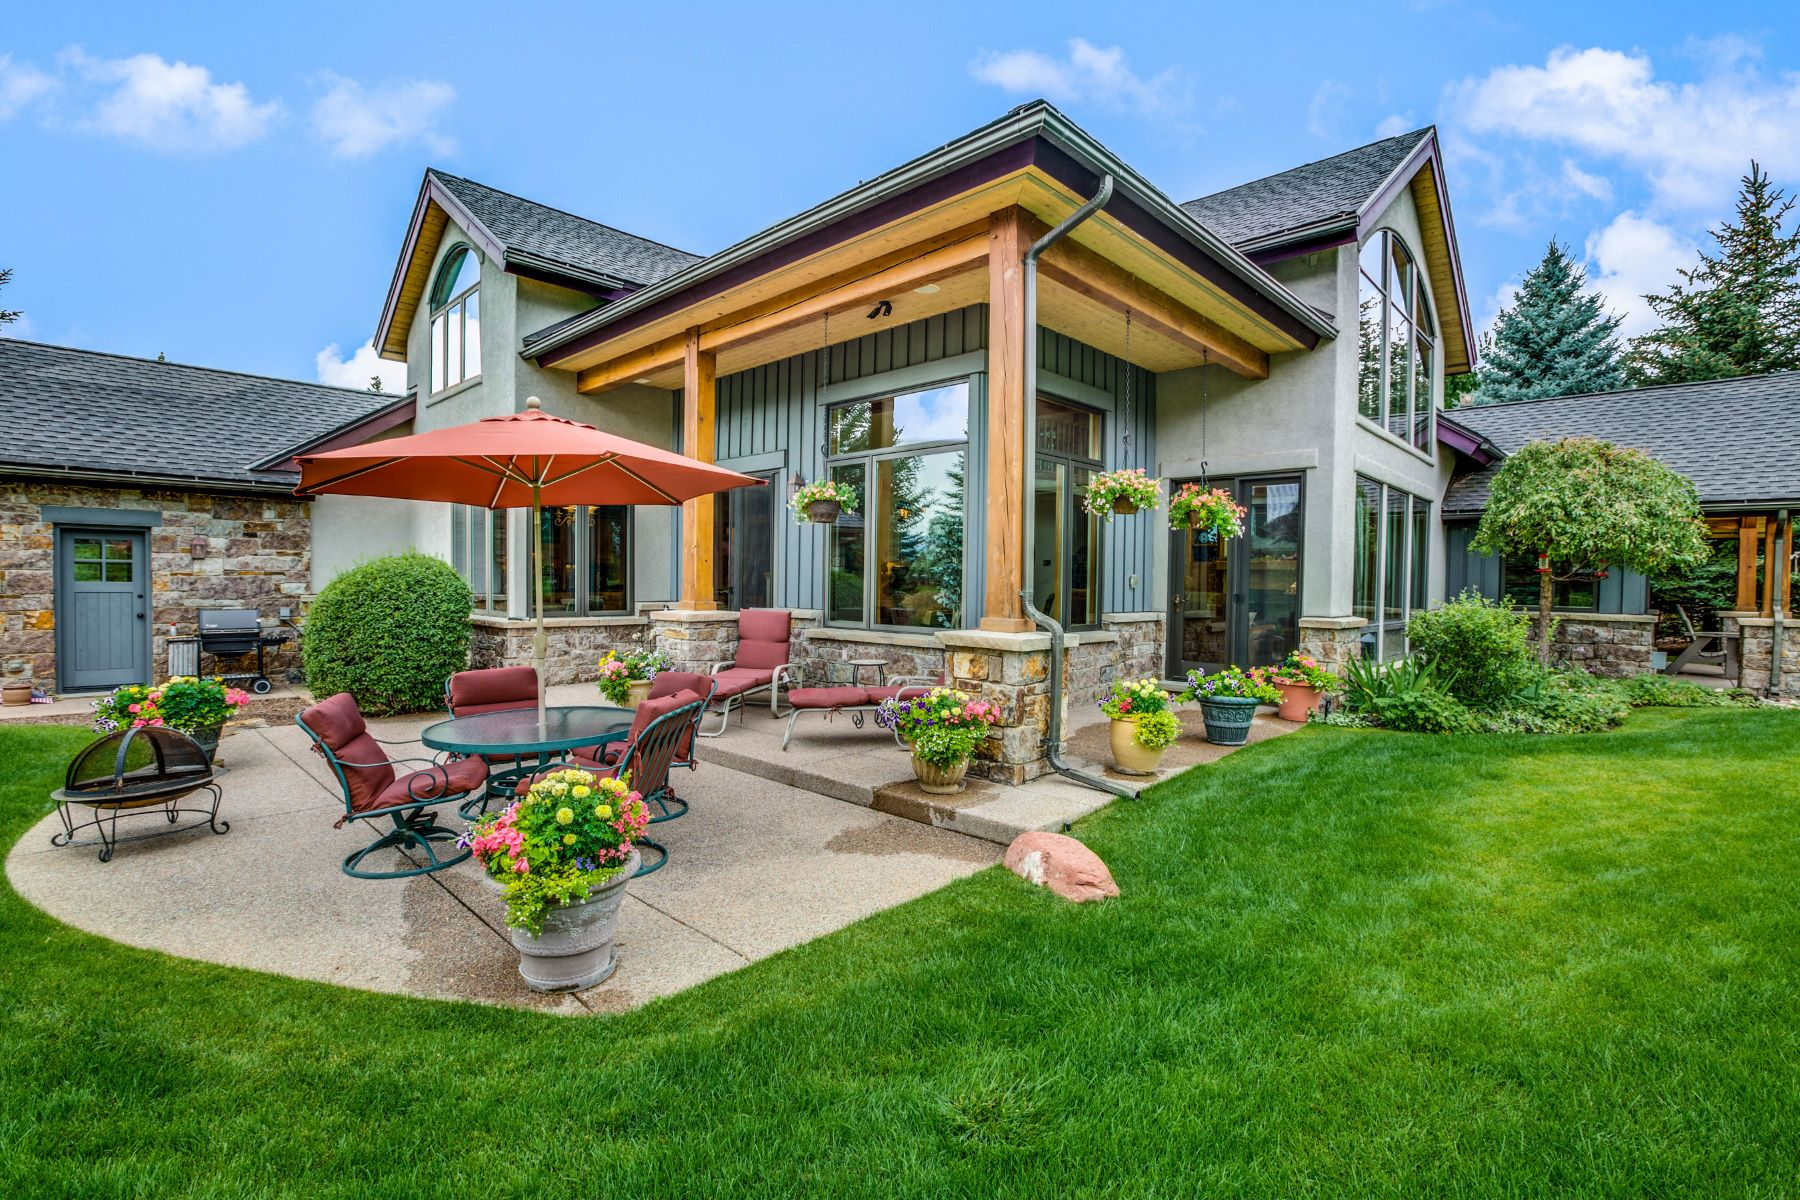 Single Family Home for Sale at Charming Mountain Home with Fairway Views 118 Kingfisher Lane Carbondale, Colorado, 81623 United States